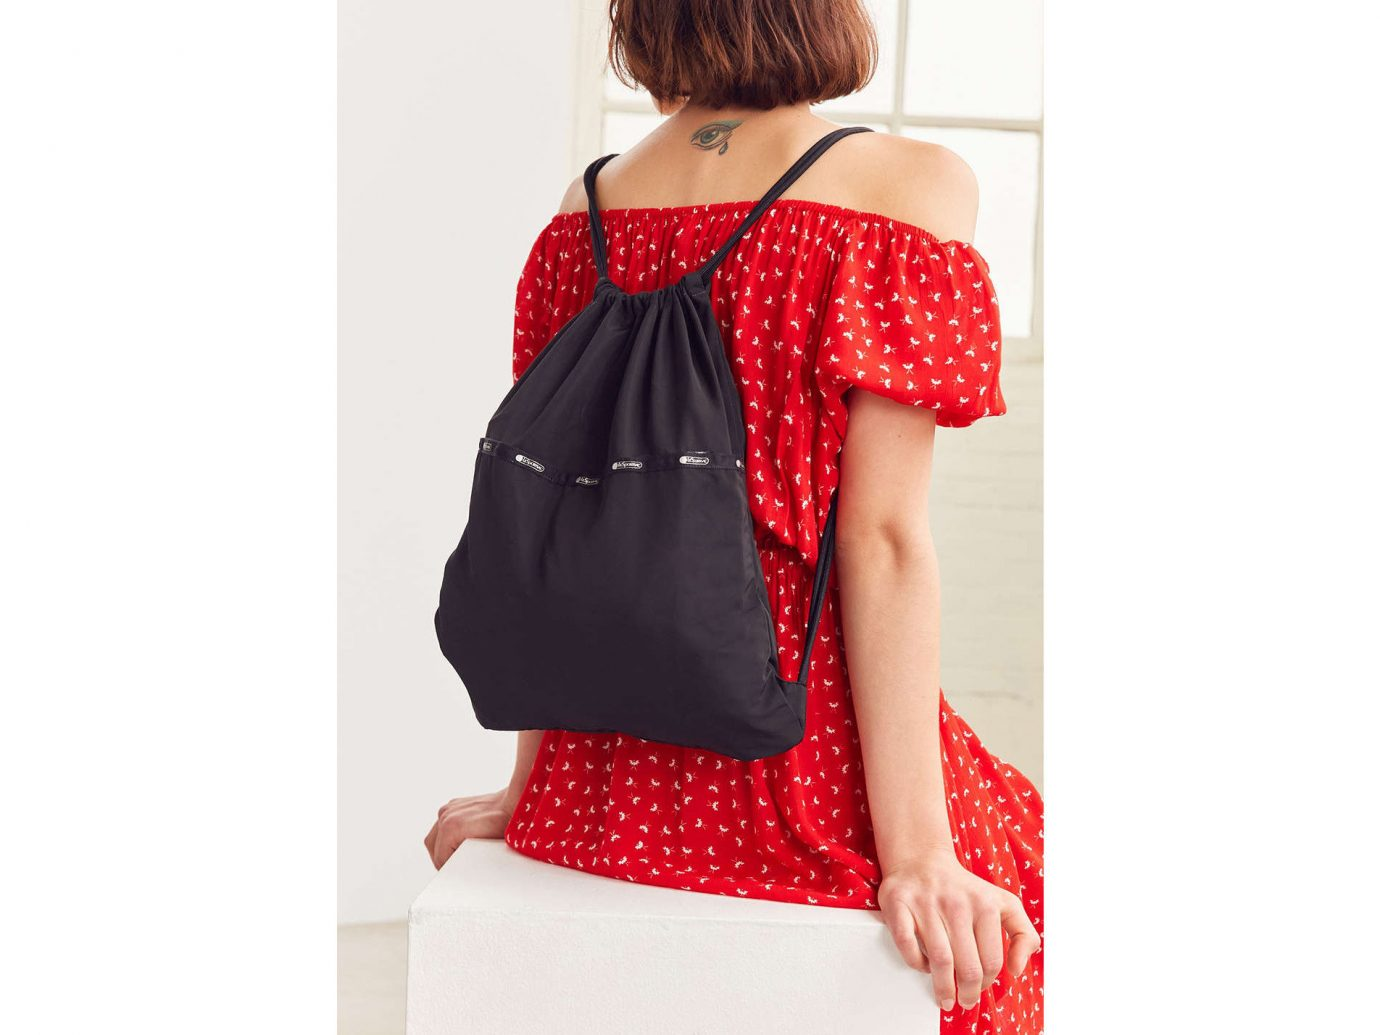 Style + Design red clothing indoor person shoulder polka dot bag Design joint pattern handbag product swimsuit top neck blouse sleeve tartan dressed